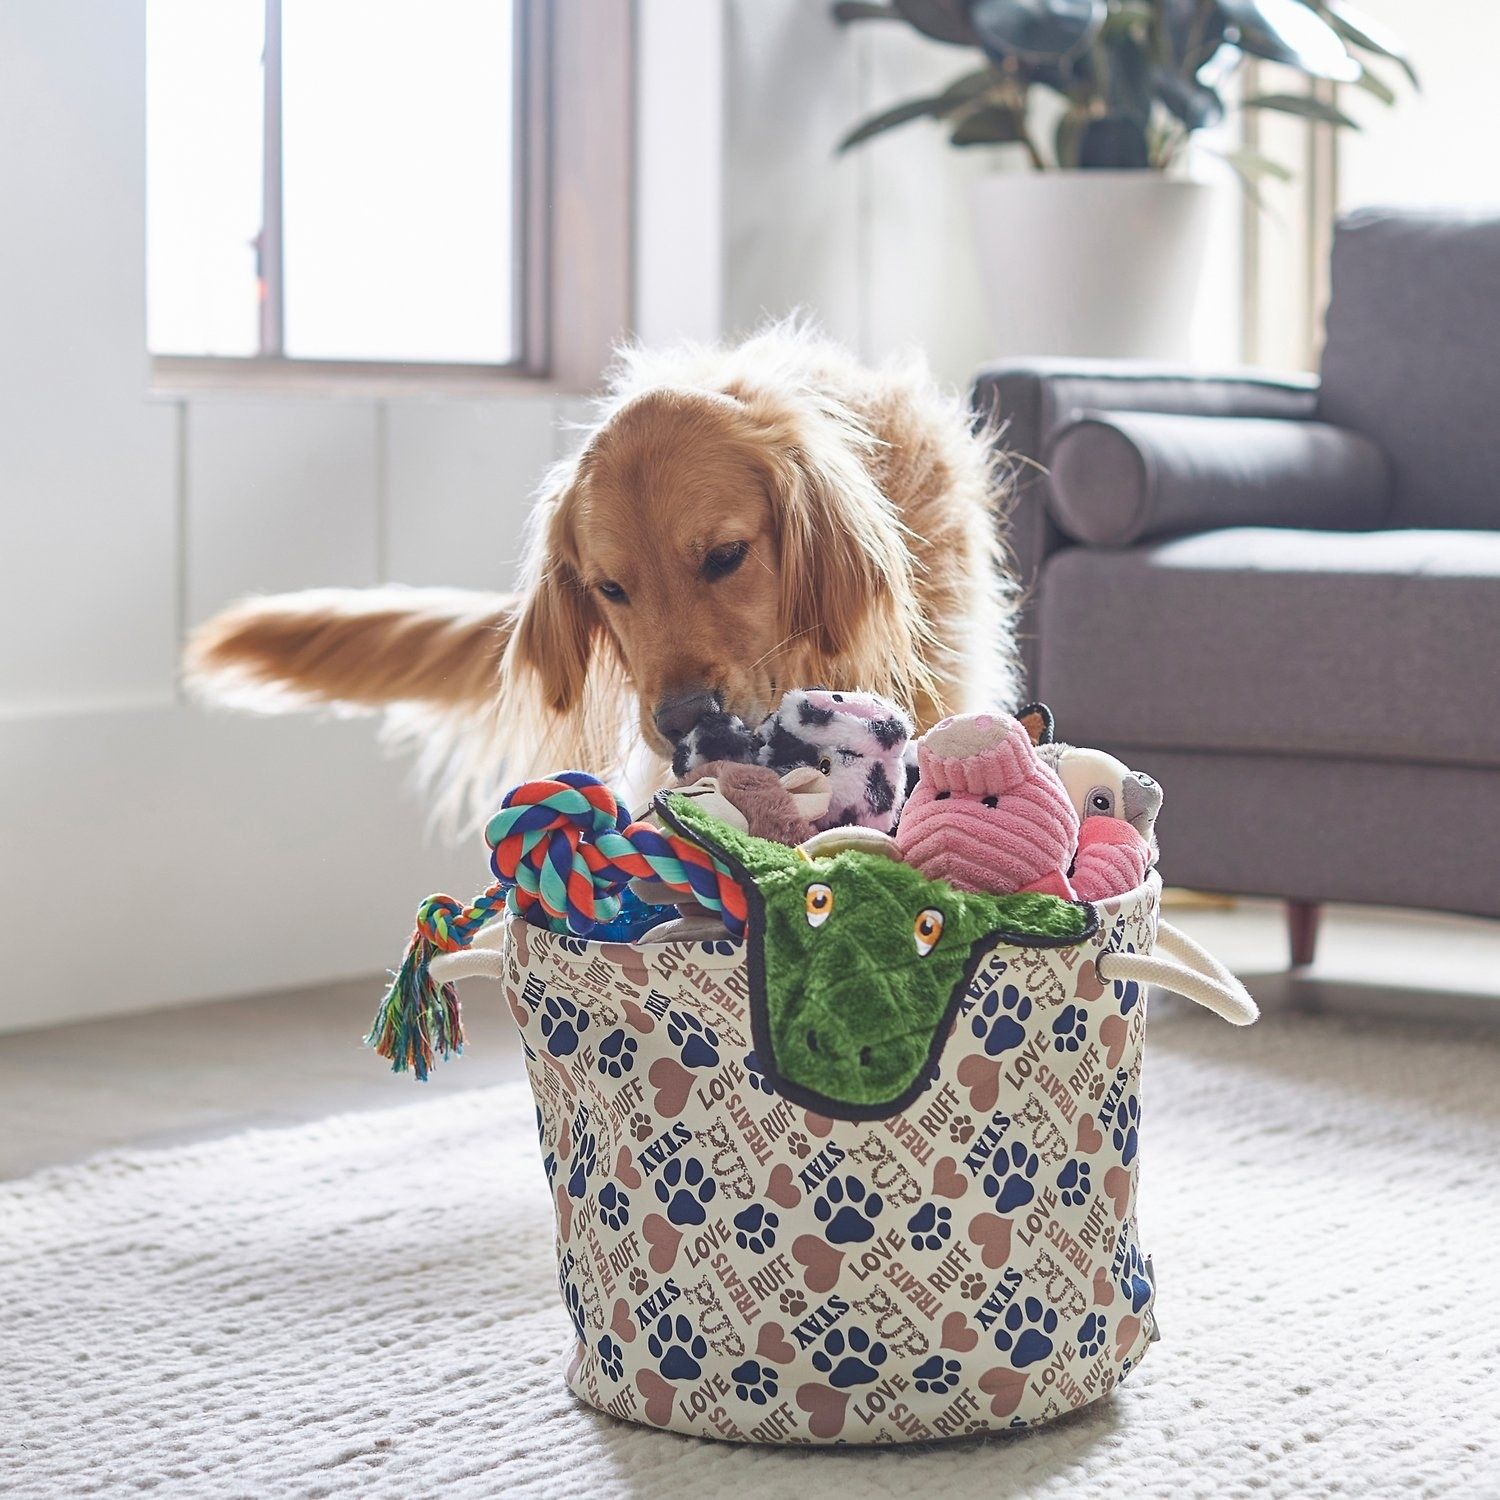 A dog grabbing a toy from the bin in a living room